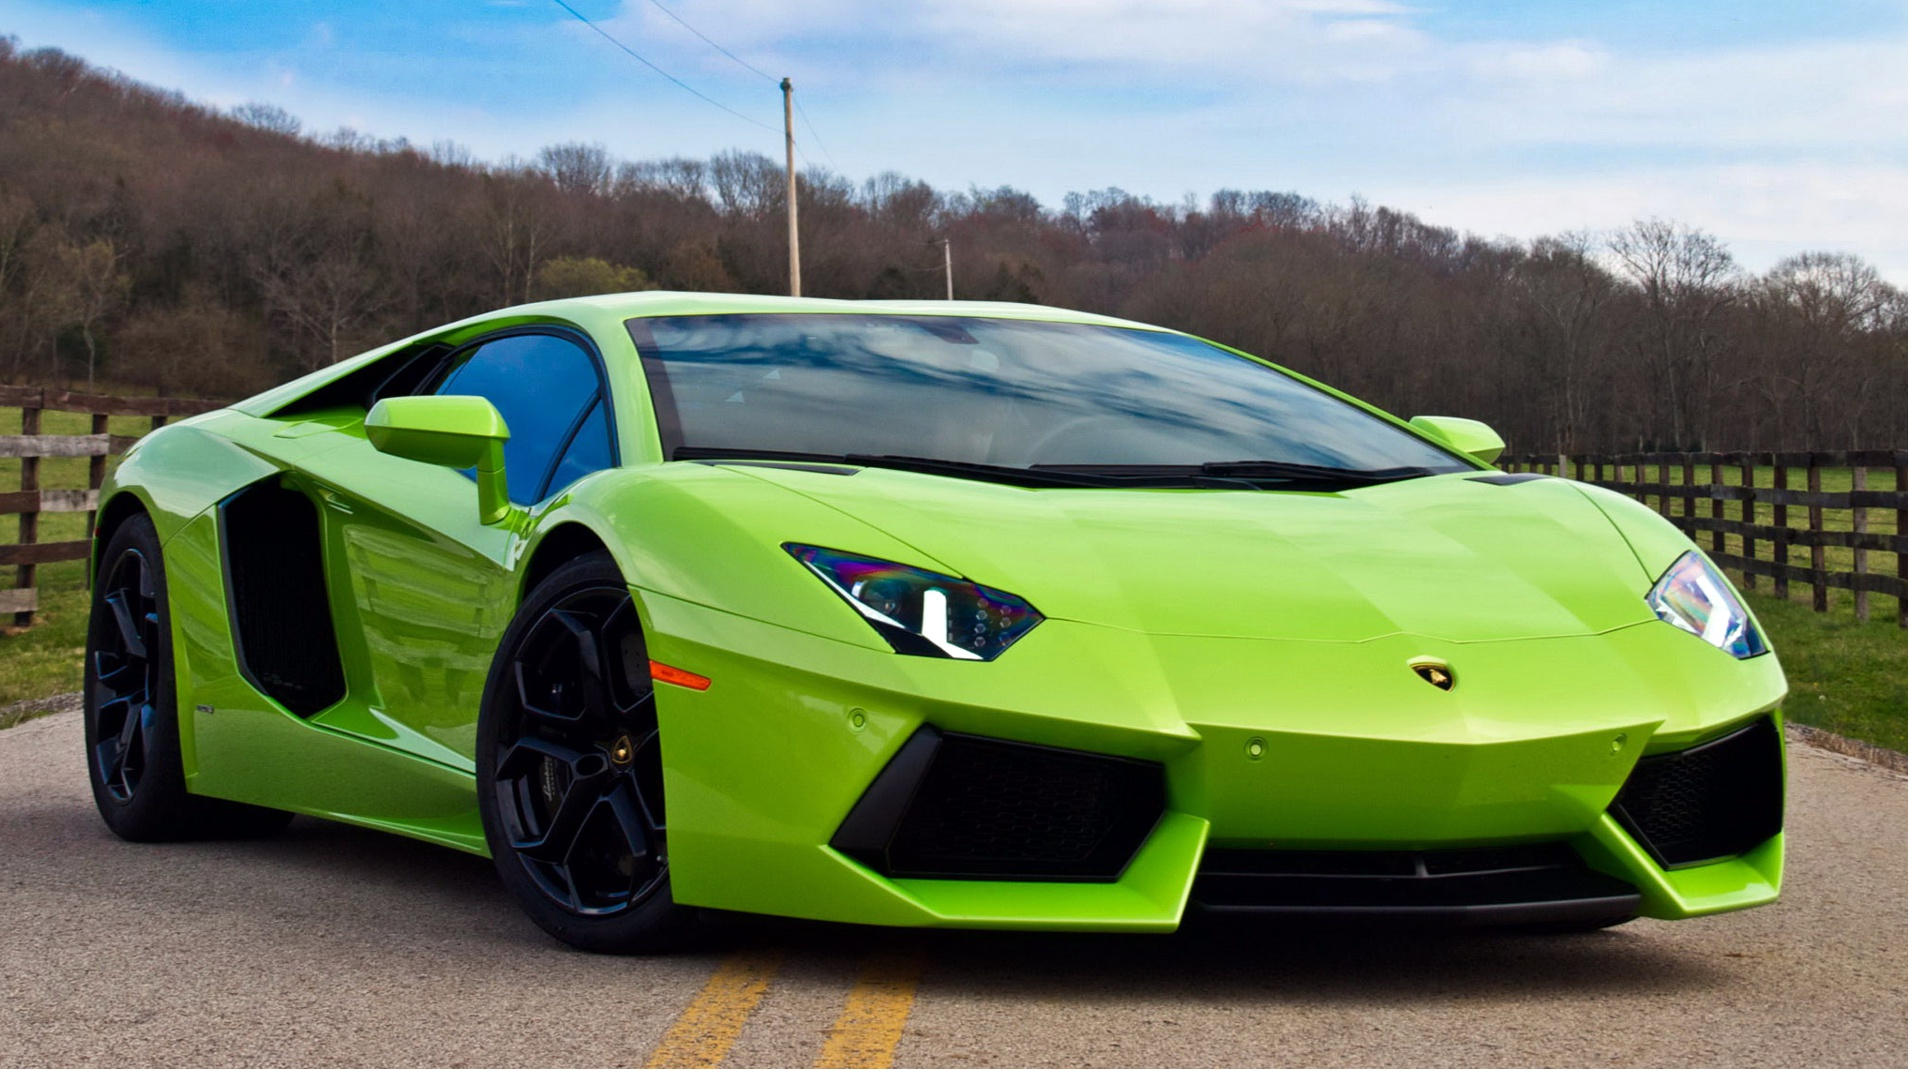 Green Lamborghini Test Drive 124.96 Kb